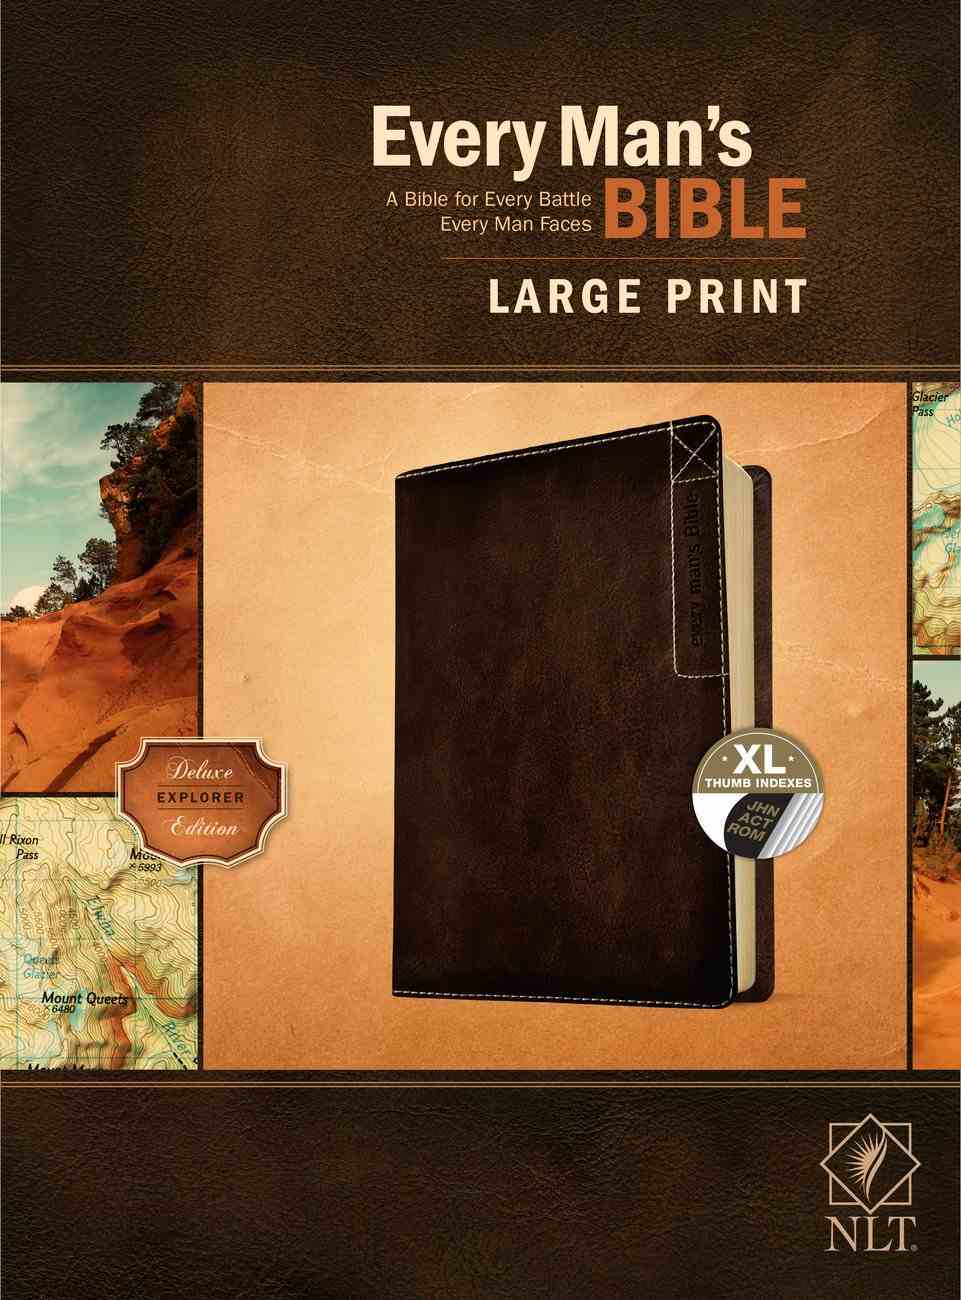 NLT Every Man's Bible Large Print Deluxe Explorer Edition Indexed Rustic Brown Imitation Leather